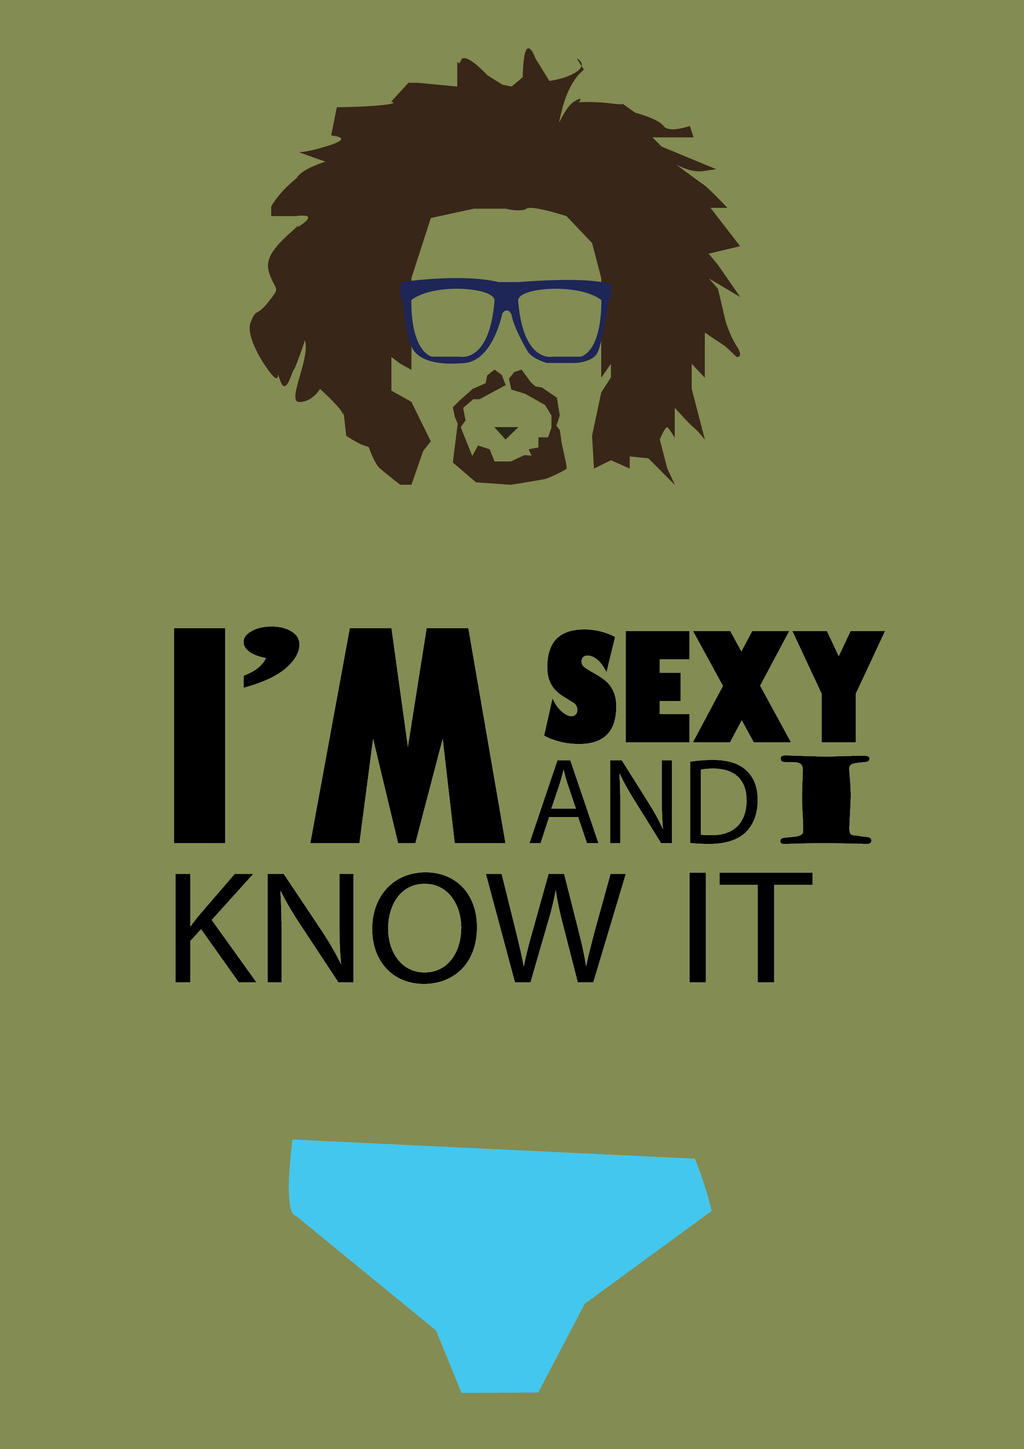 I am sexy and i know it song